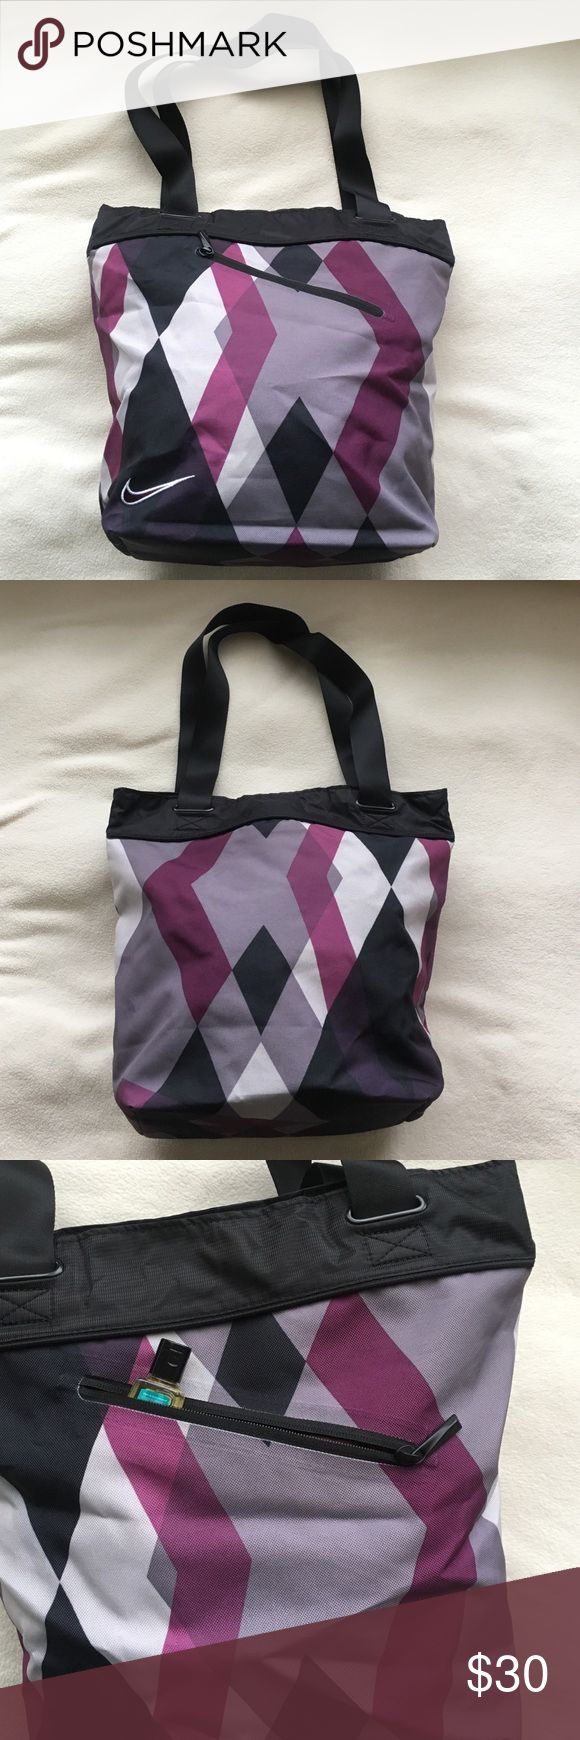 "Nike tote bag Purple and black Nike tote bag. Perfect for those days when going to work, to the gym, to the store transition bag! Fits comfortably over your shoulder and is about 14"" deep and 11"" wide. It is a black and purple color patten. NWOT Never been used. Nike Bags Totes"